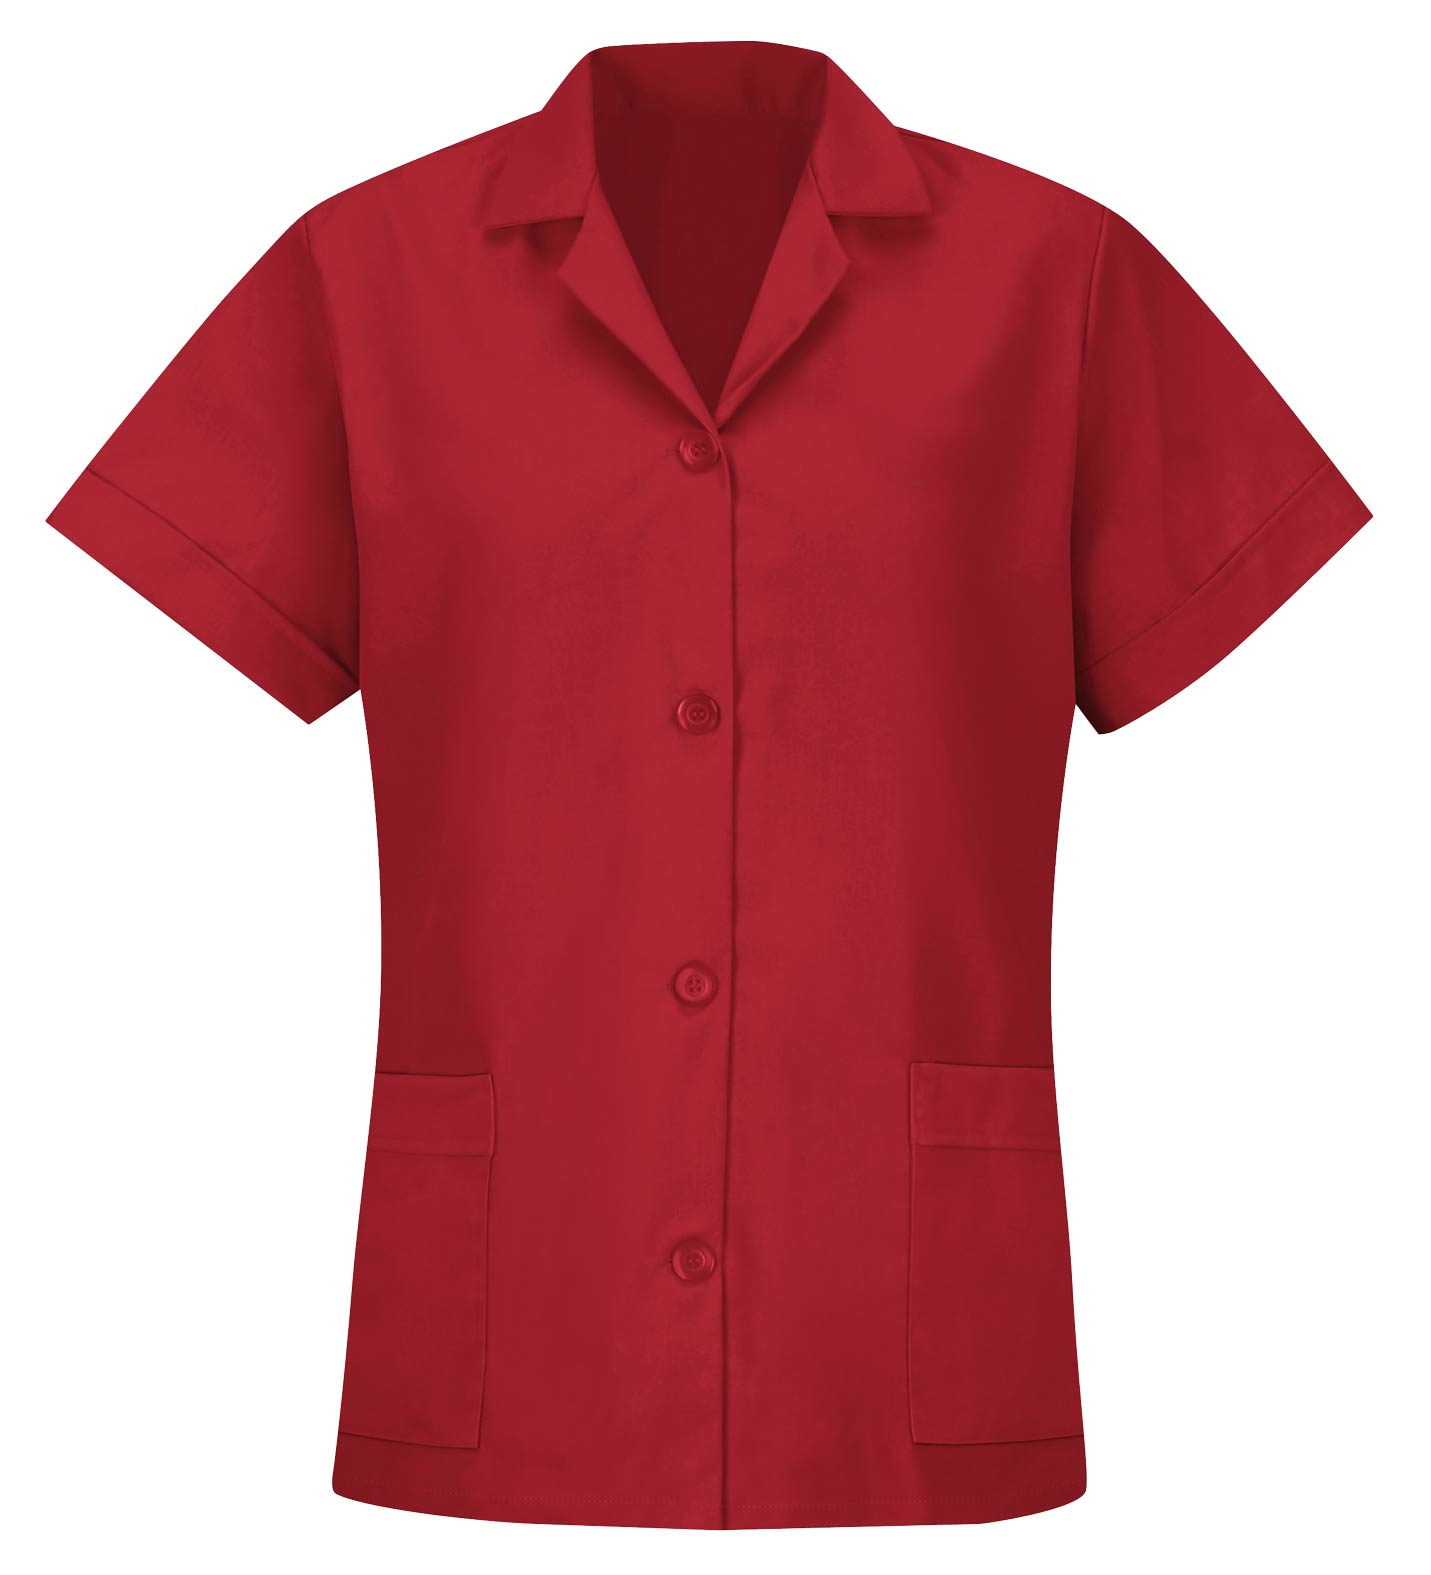 Womens Red Kap Loose Fit Short Sleeve Button Smock